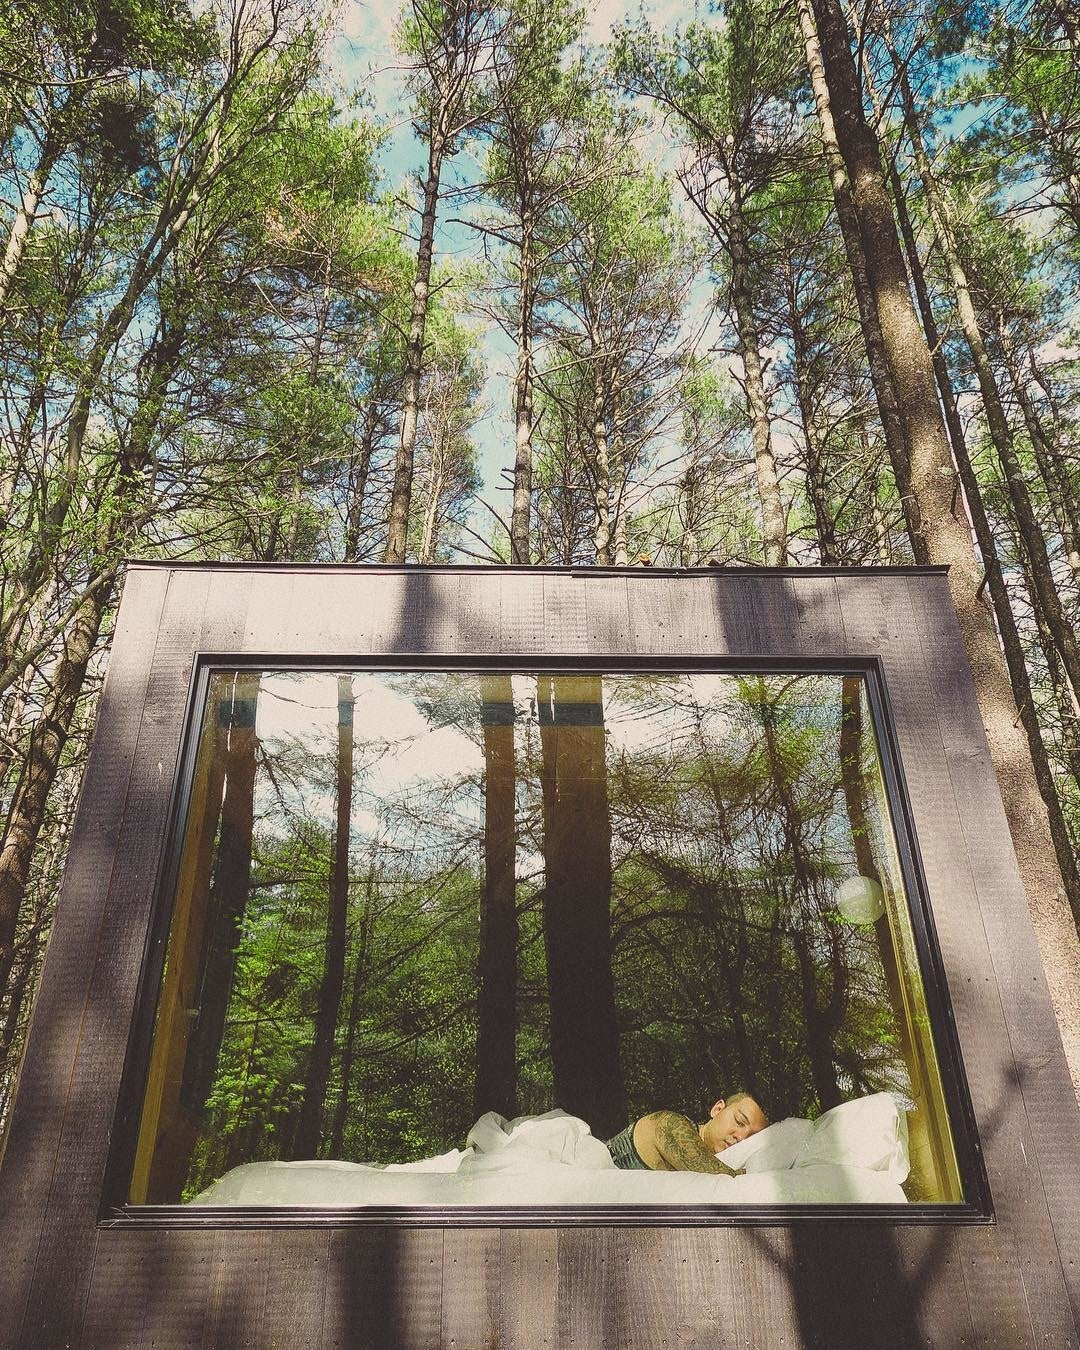 image by theaccidentalbohemian containing tree, plant, architecture, house, window